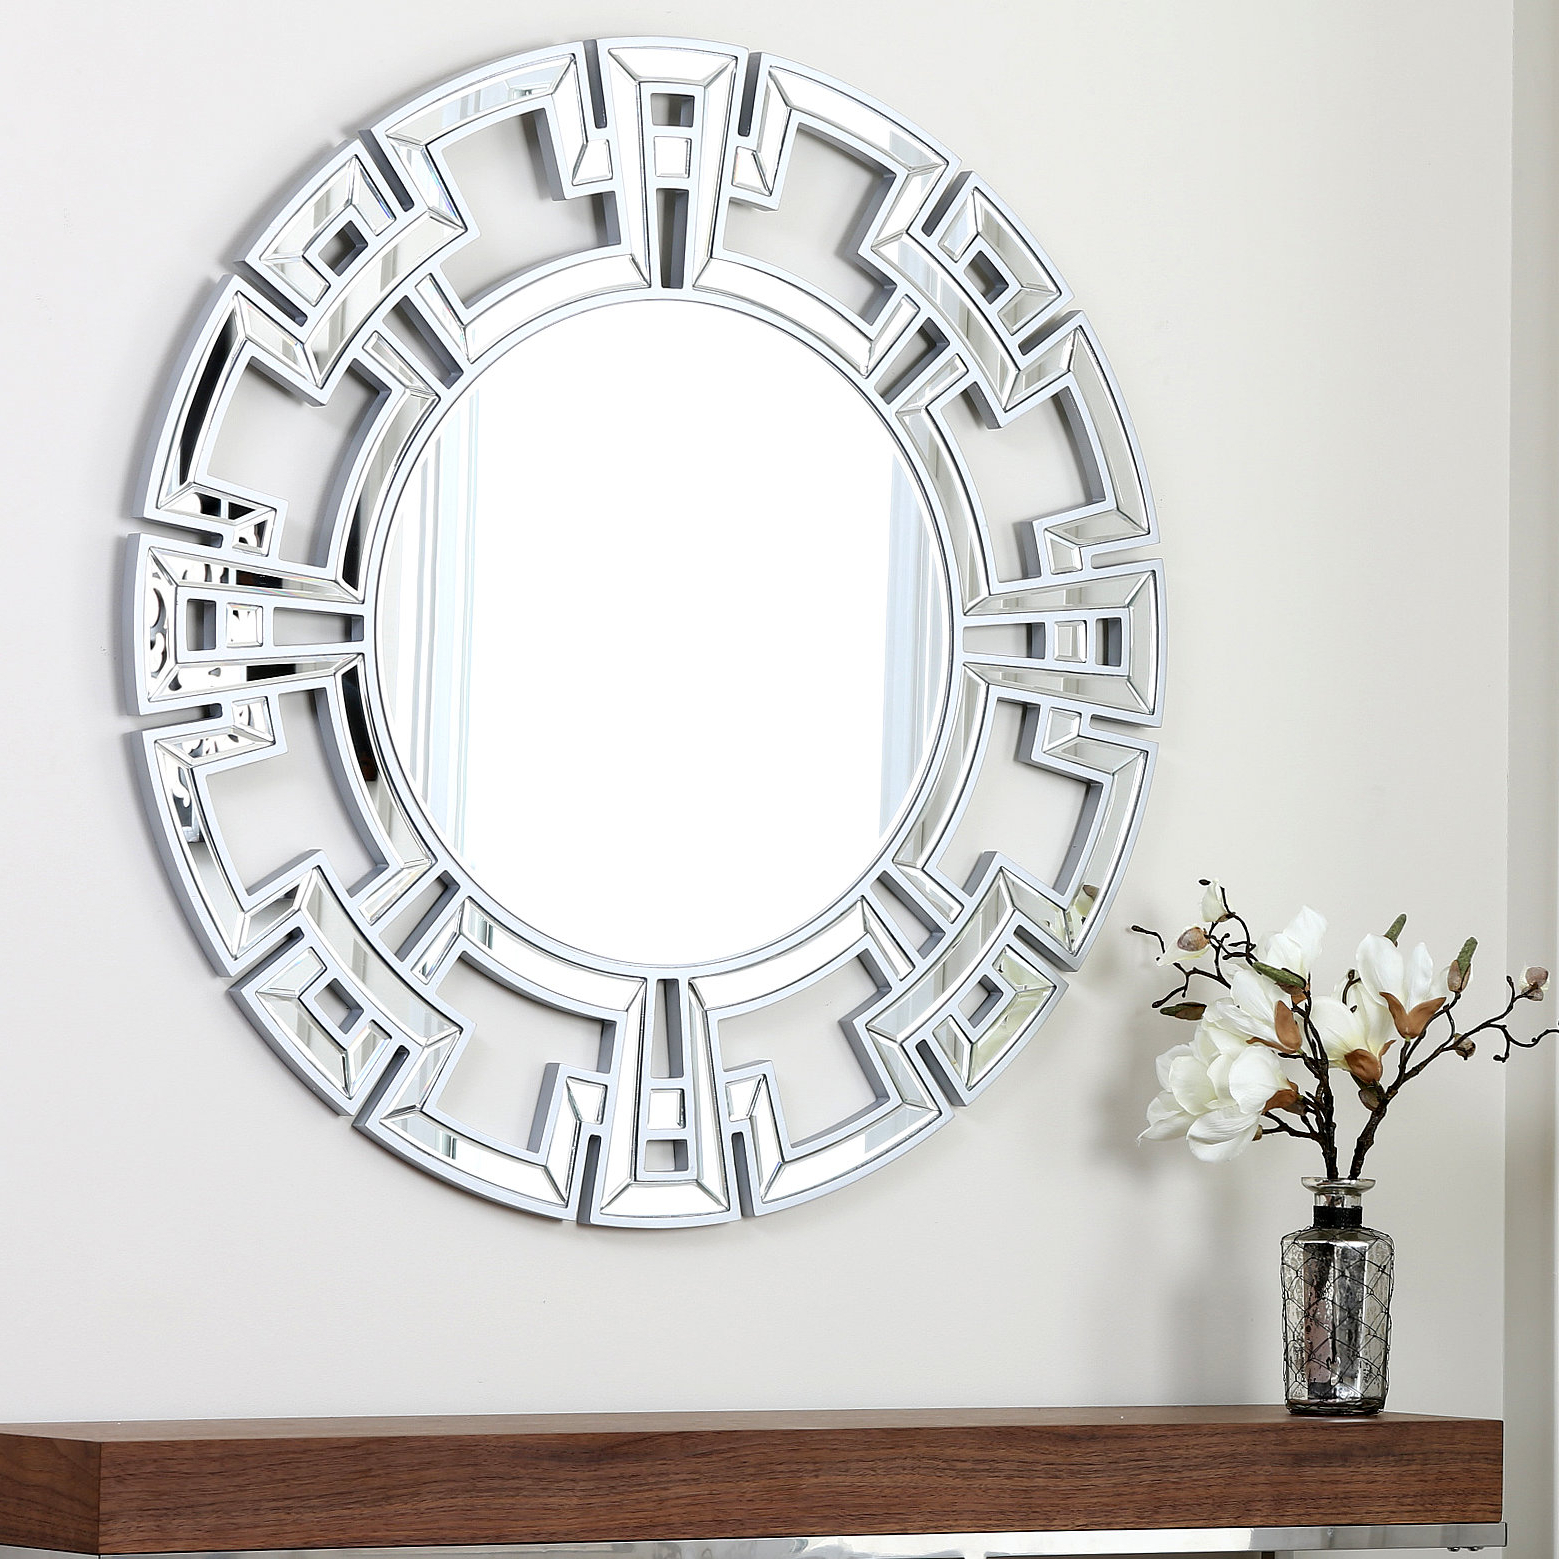 Most Current Tata Openwork Round Wall Mirrors Inside Willa Arlo Interiors Tata Openwork Round Wall Mirror (View 3 of 20)